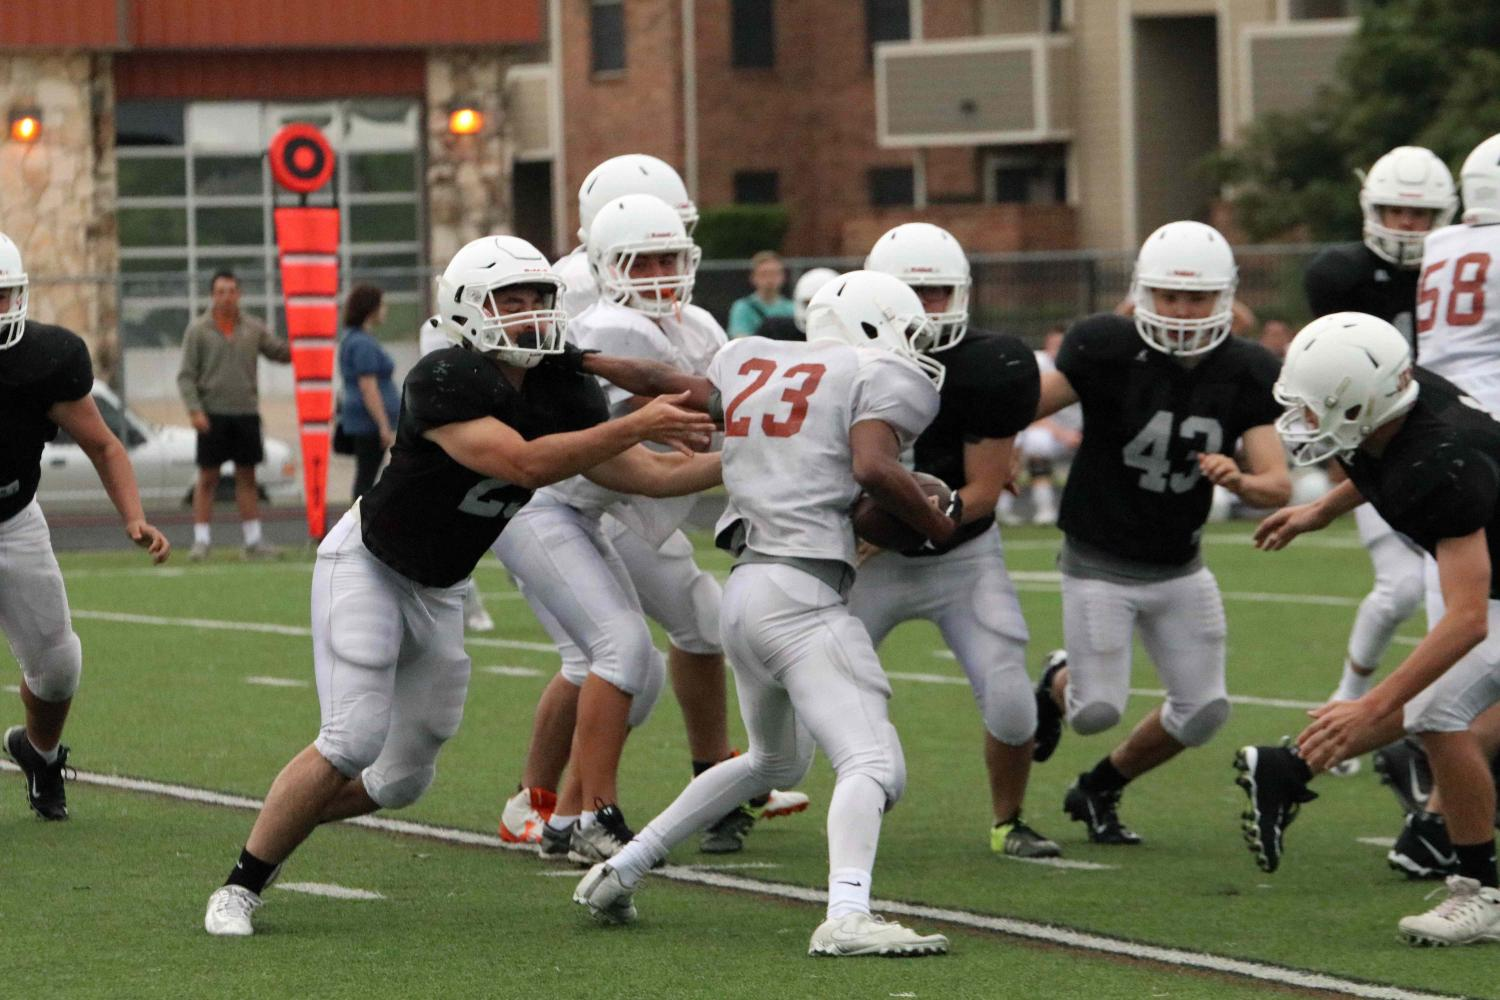 GALLERY%3A+Football+Plays+Second+Scrimmage+of+Spring+Season